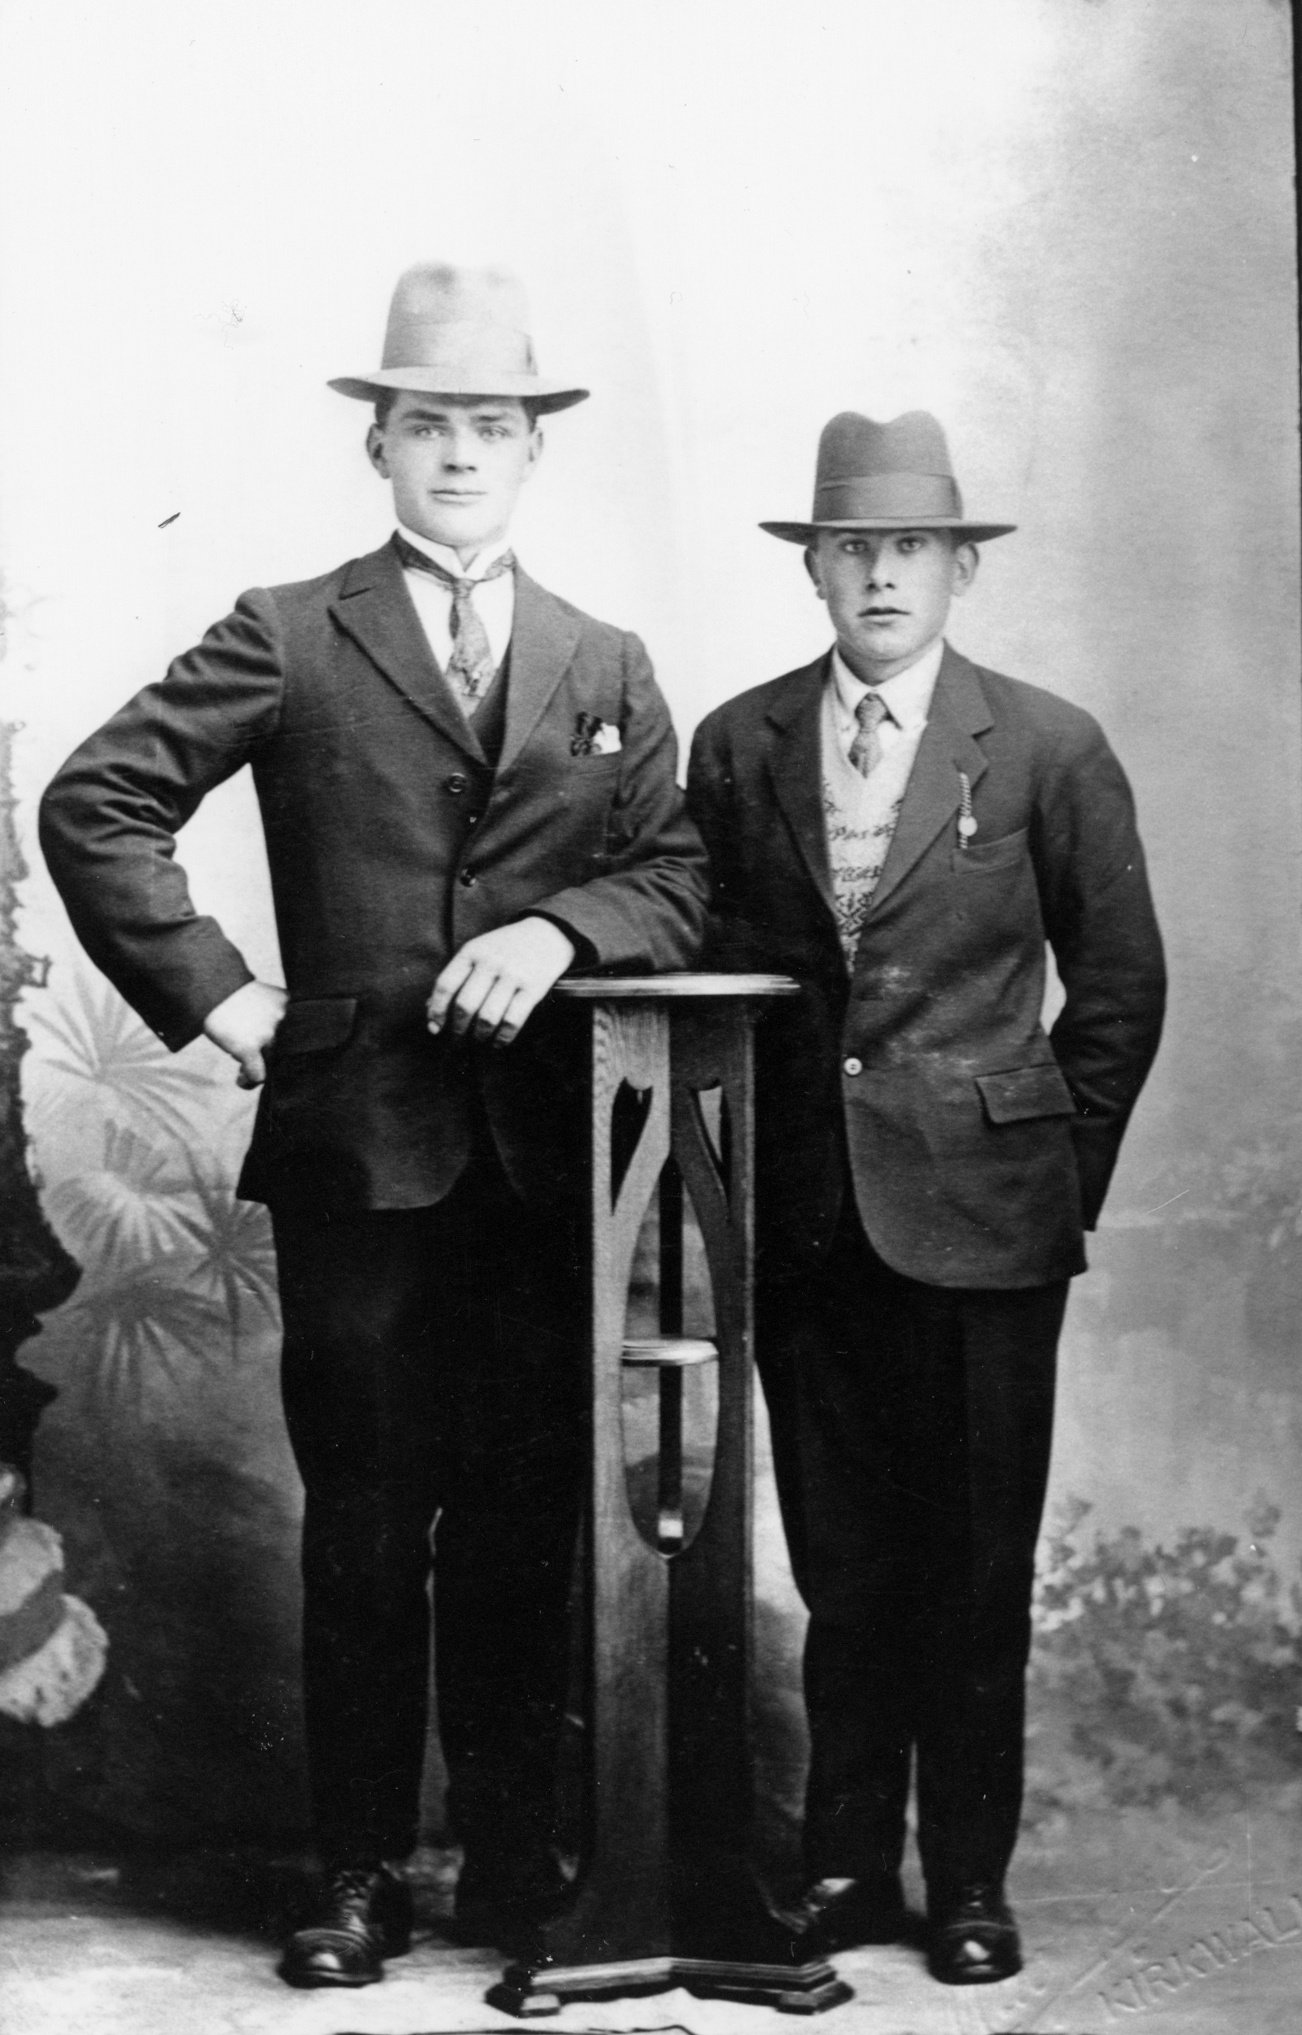 Studio Portrait Two Young Men 1920s